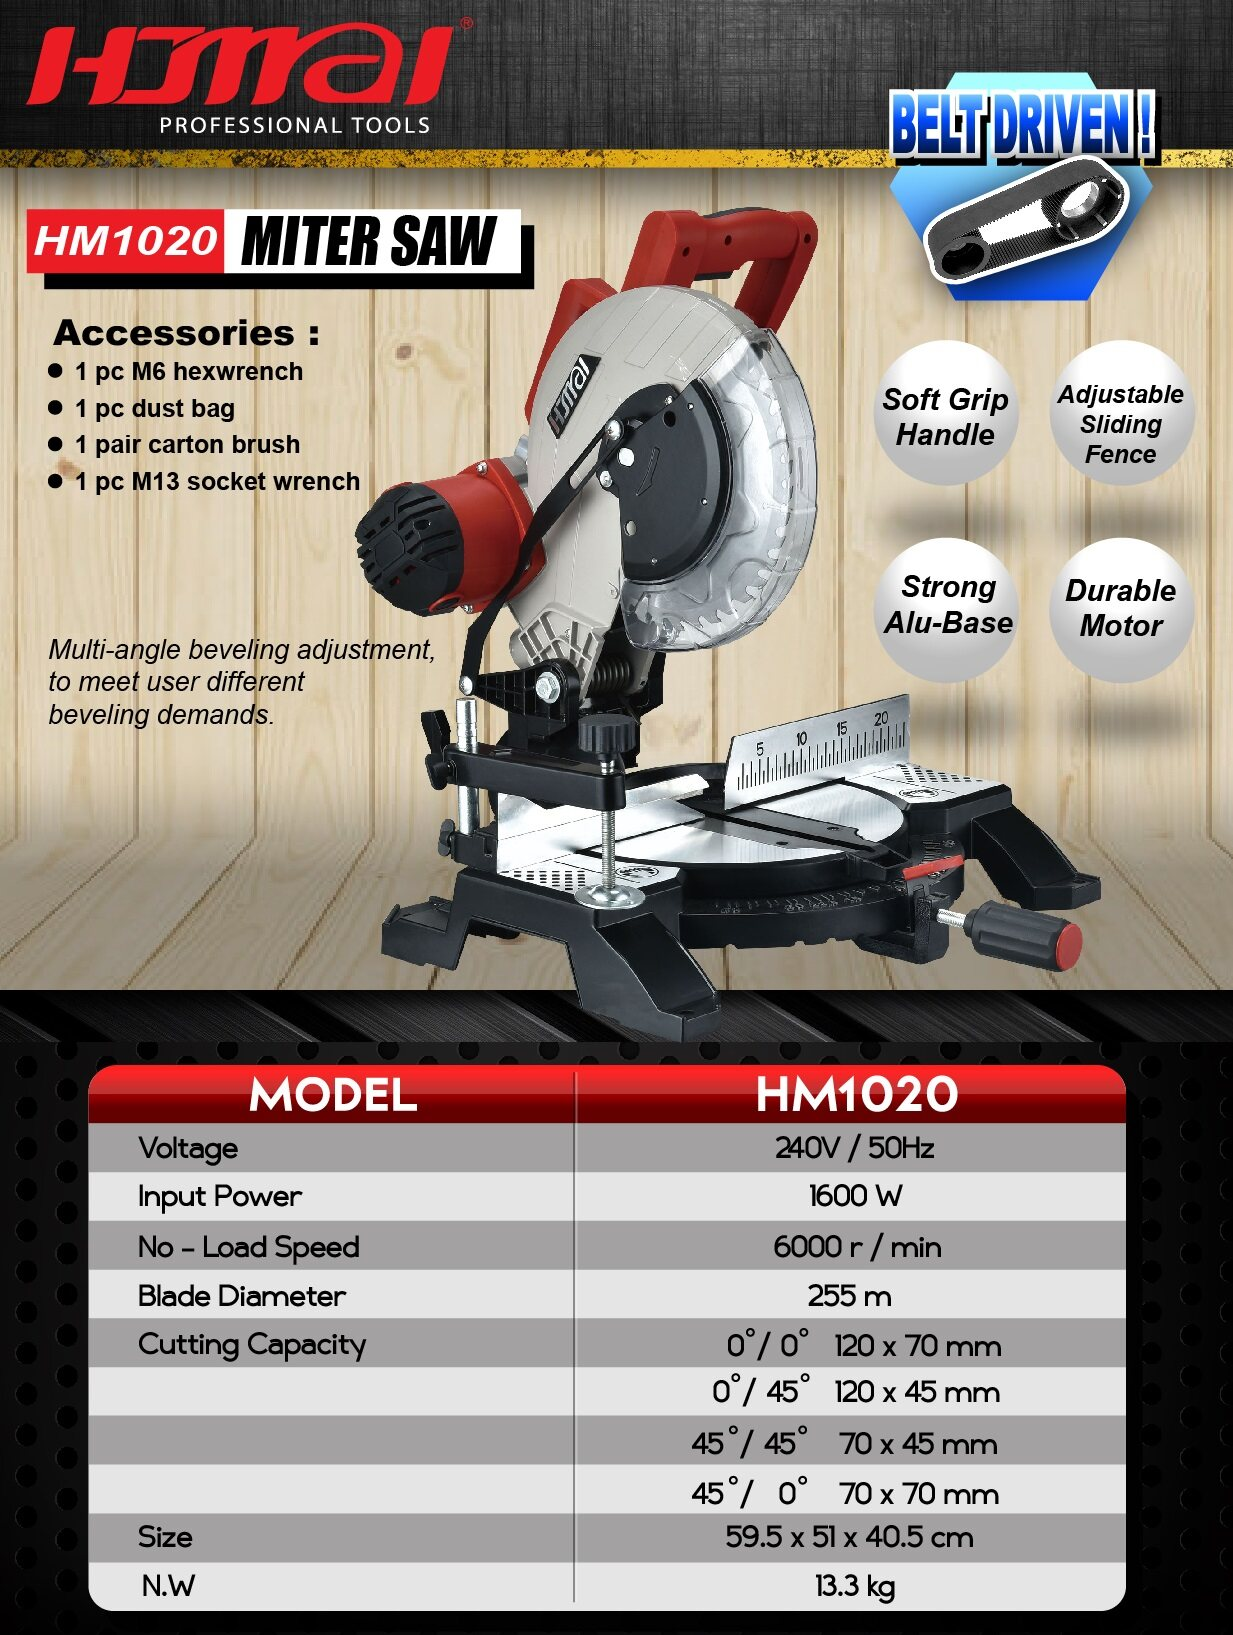 10 inch miter saw cut off saw power tool level cutter disc lock bench roller slicer speed pressure motor slice roll blade metal aluminium profile auto up down press down move angle side slide grinder drill cutting high wheel base control measure support